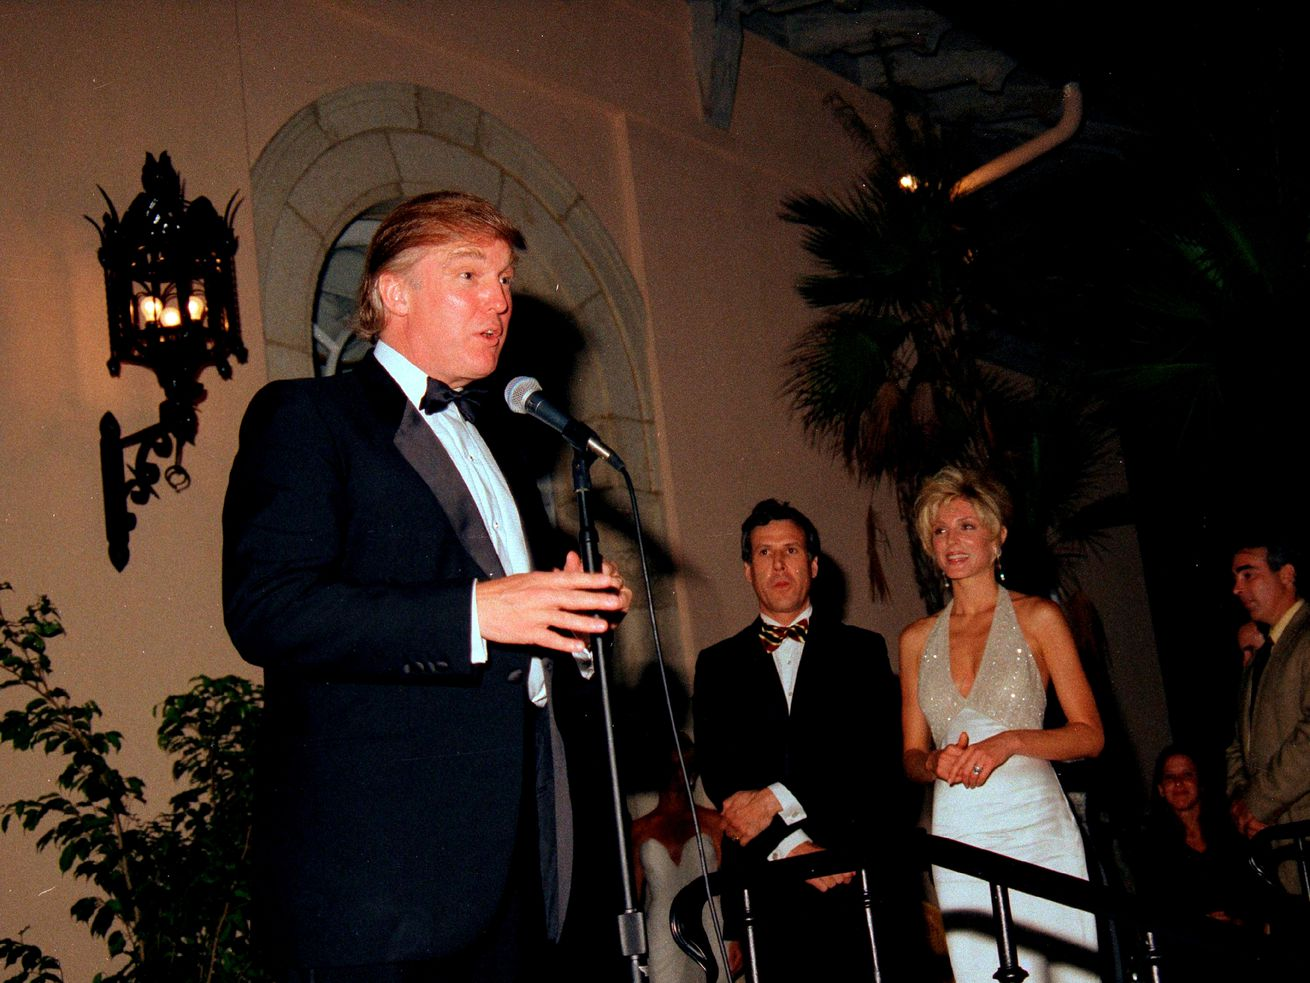 Donald Trump at the Mar-a-Lago Club in 1995, around the time E. Jean Carroll says he sexually assaulted her.